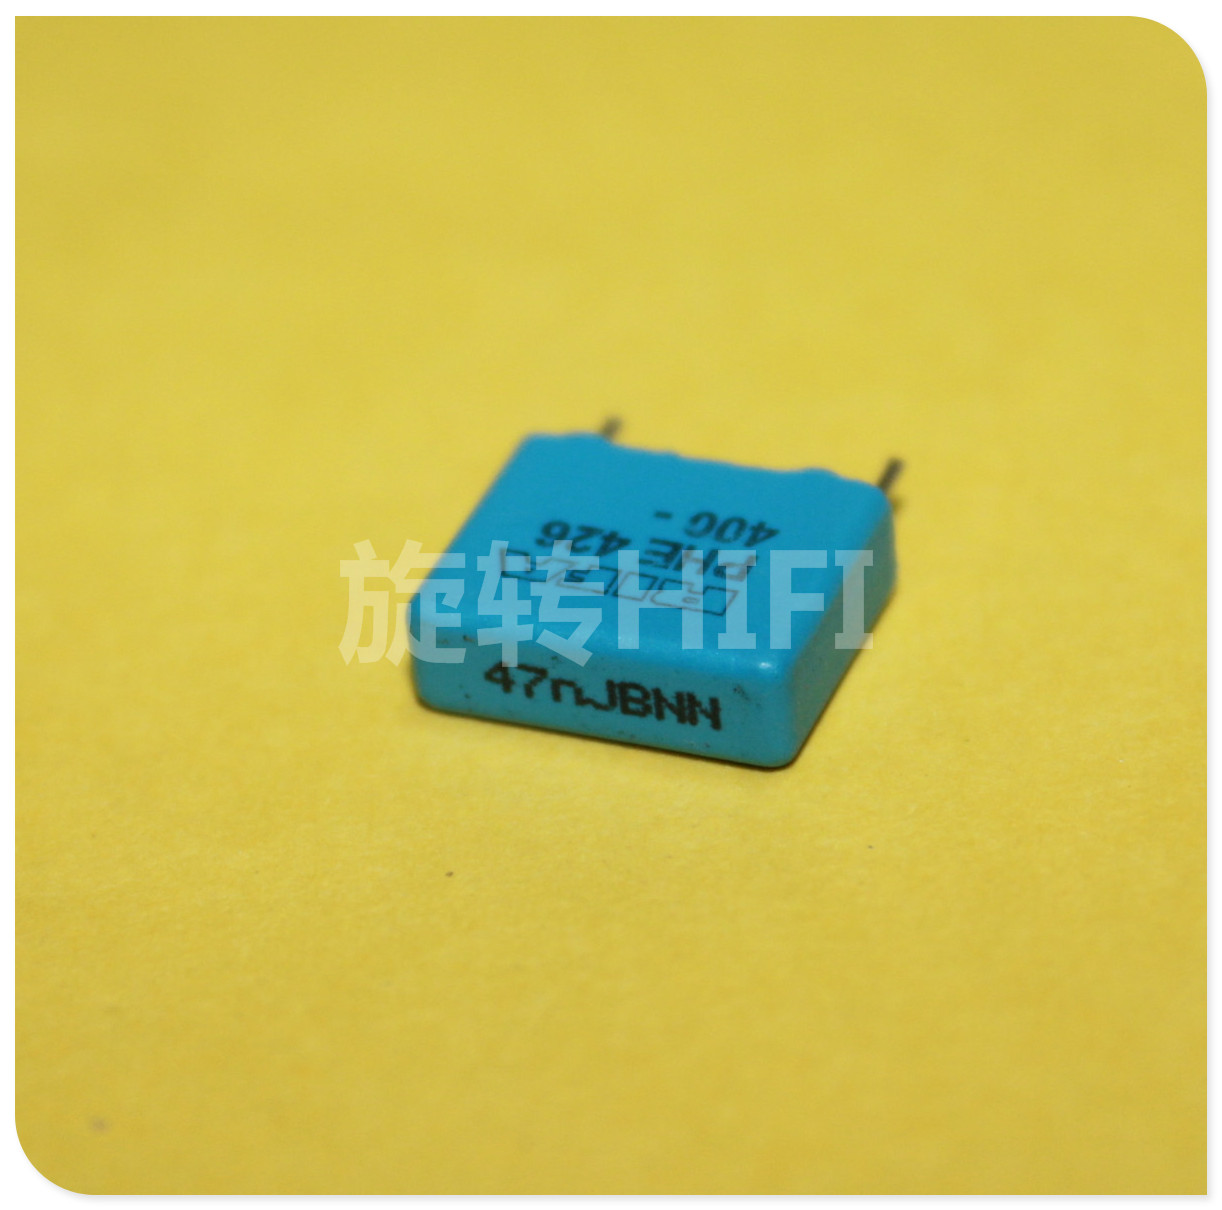 10PCS RIFA PHE426 0.047UF 400V P10MM MKP 473/400V audio blue film Capacitor 426 0.047u 400VDC 47NF 473|Operational Amplifier Chips| |  - title=